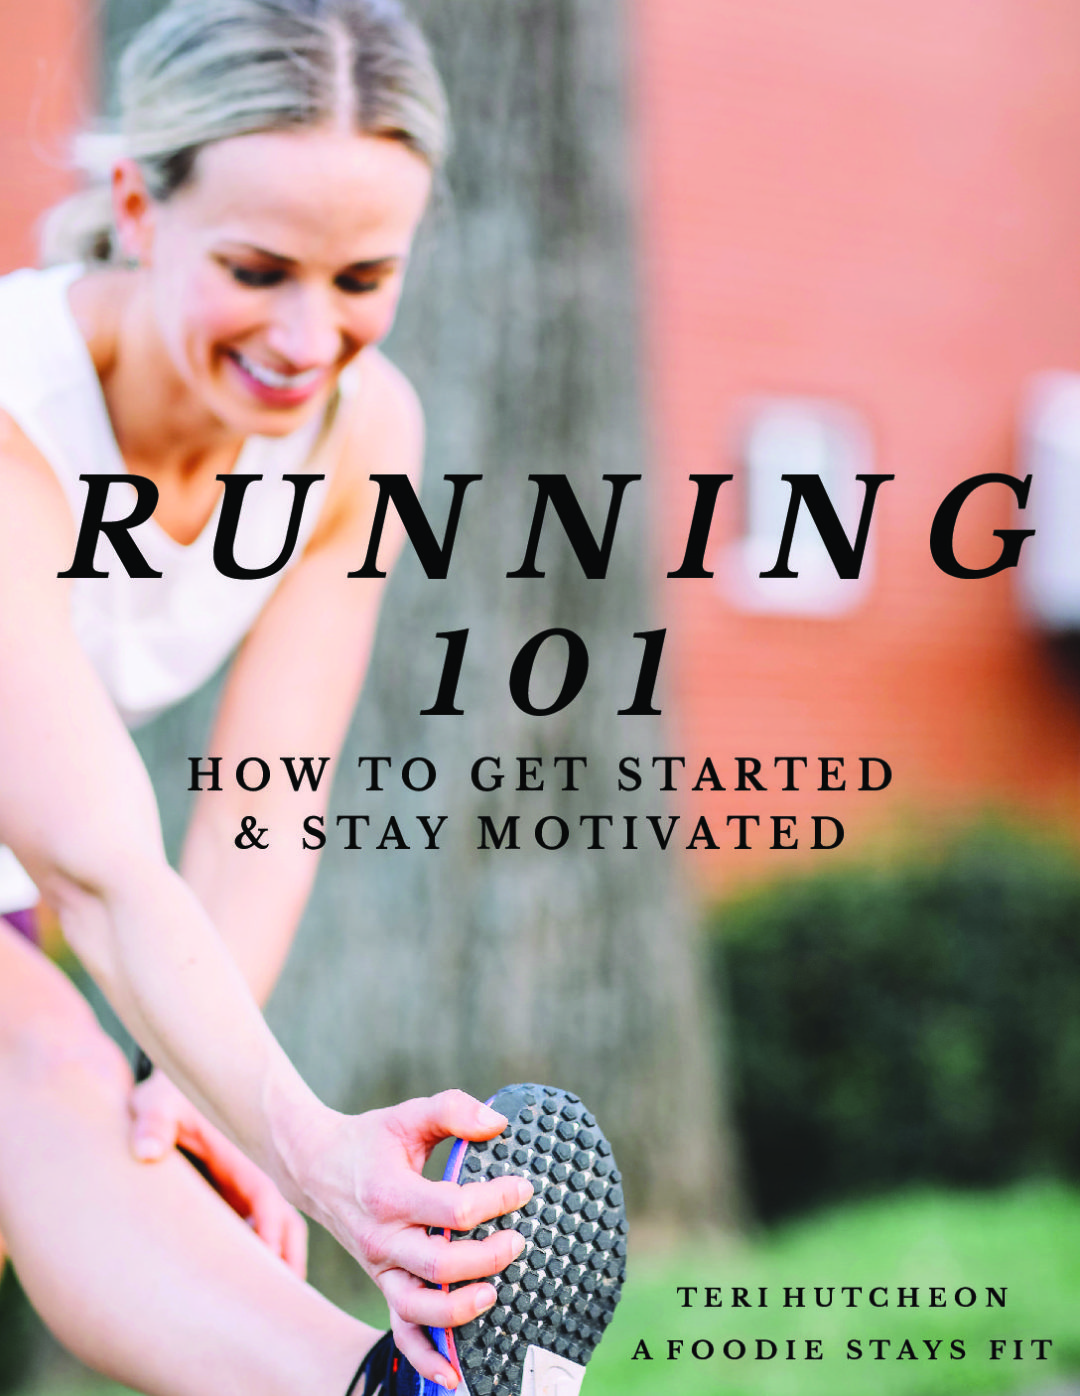 Running for Beginners: shoes, fuel, motivation & more! - A Foodie Stays Fit